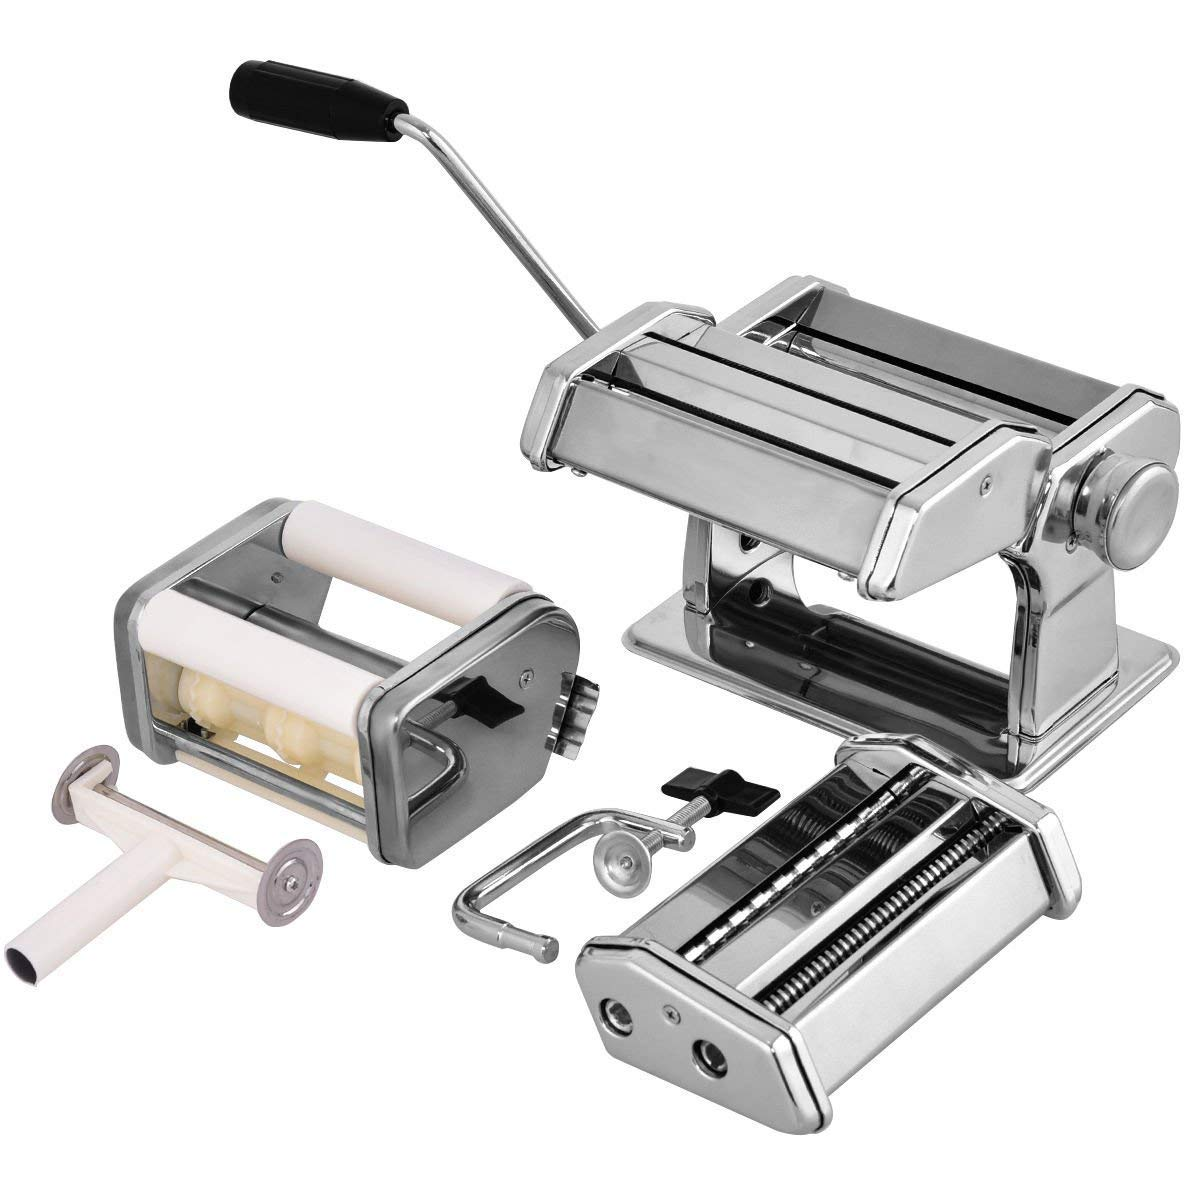 Costzon Pasta Maker Machine, 5 in 1 Stainless Steel Construction, 7 Adjustable Thickness Settings, 150 Roller Pasta Cutter, Spaghetti Maker Hand Crank, Clamp